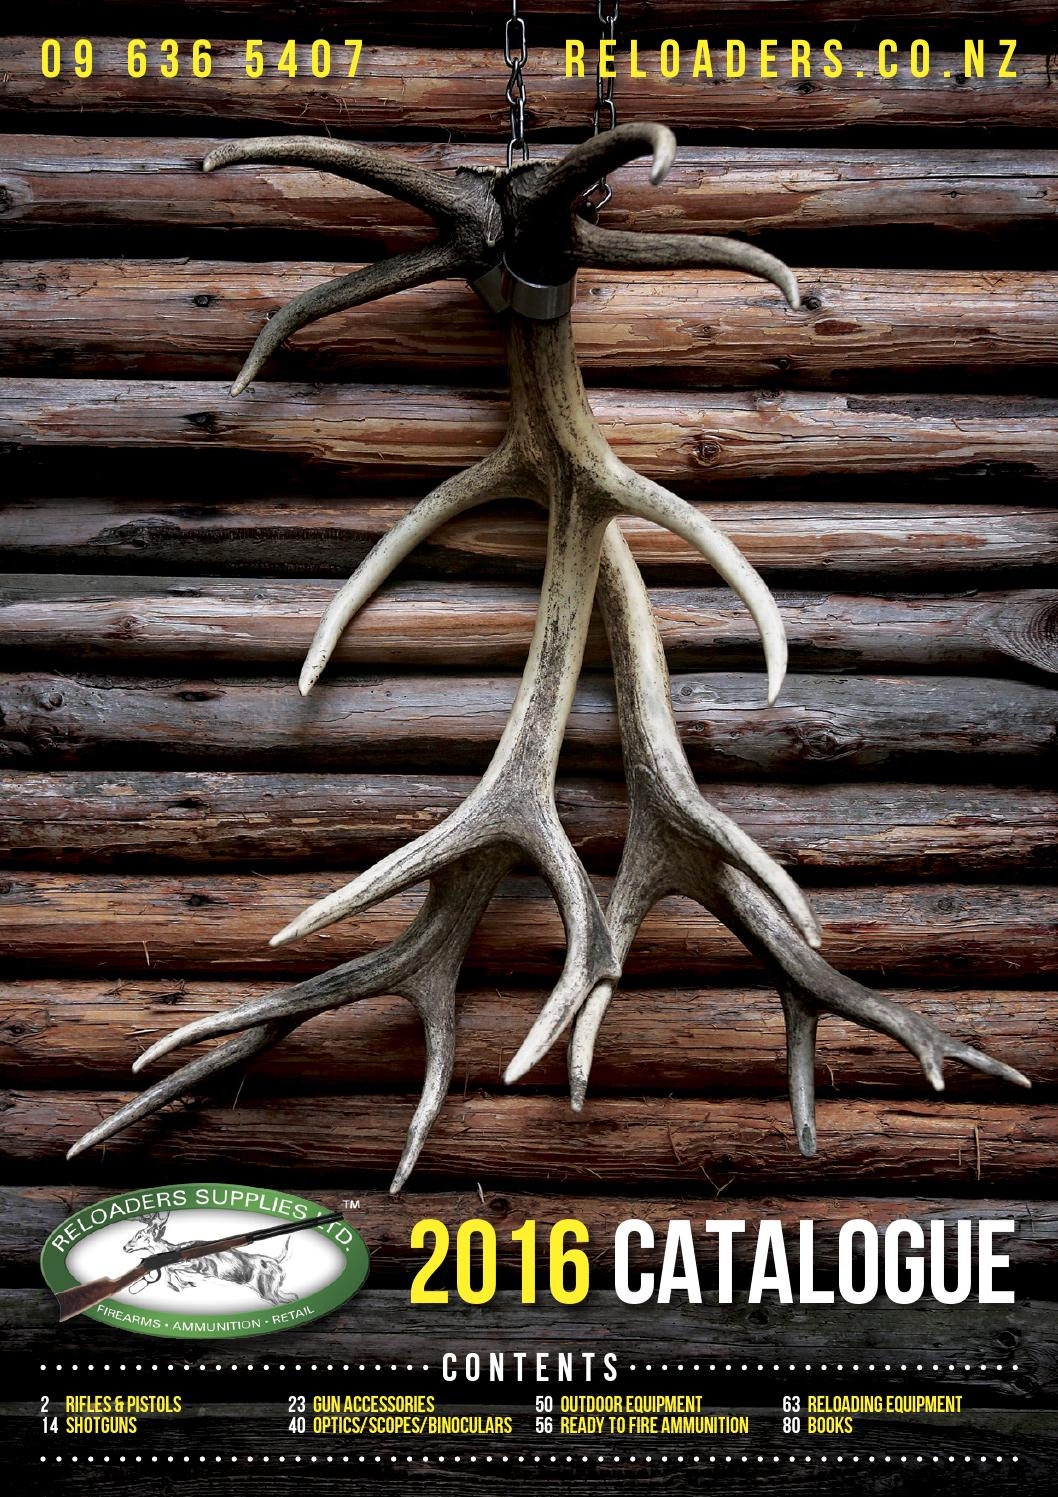 Reloaders Shooters Supplies Catalogue 2016 by Hurst Media Ltd - issuu